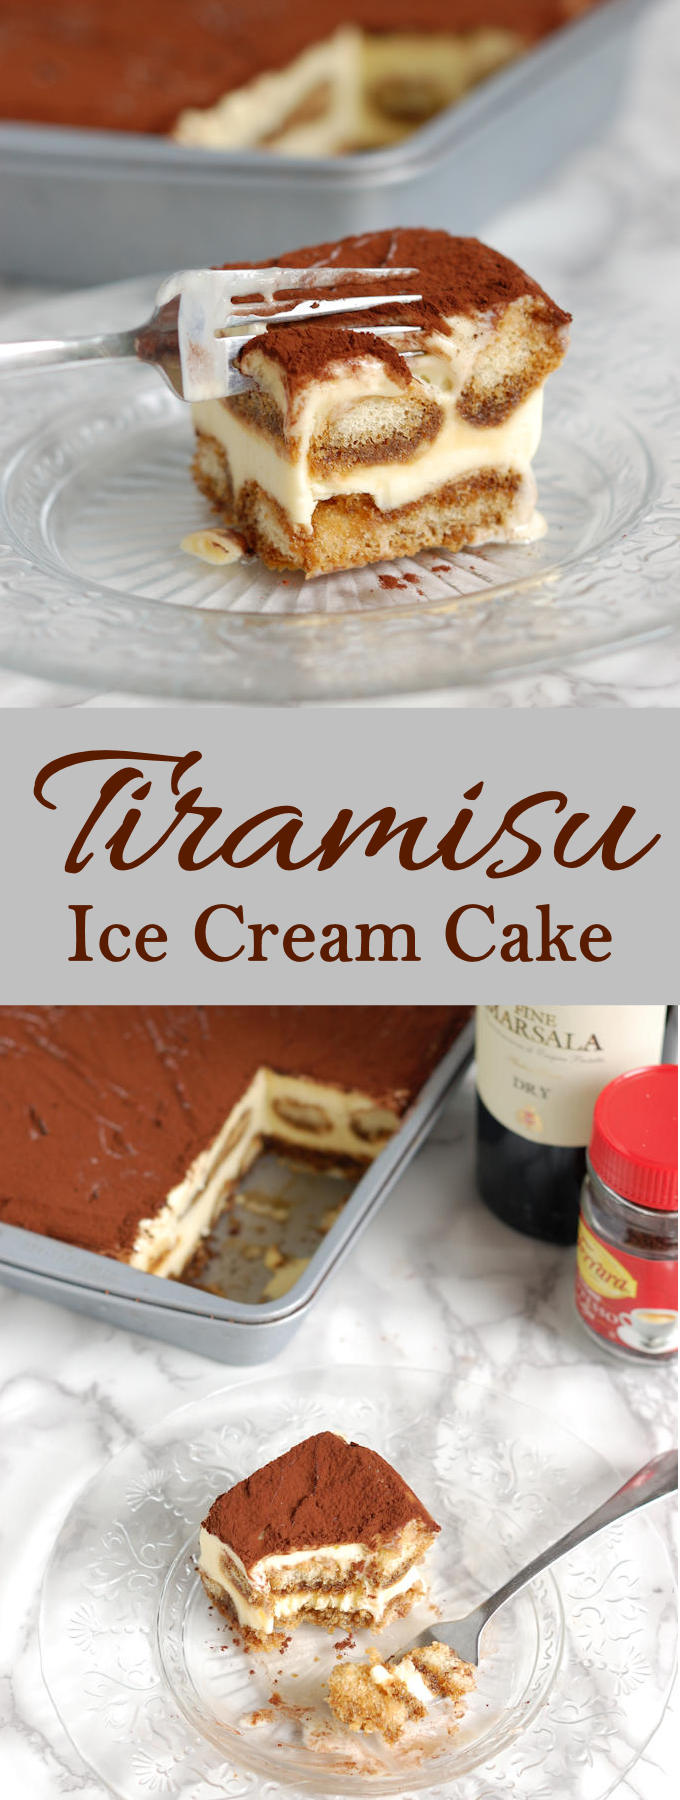 The classic Italian Dessert turned into a luscious Tiramisu Ice Cream Cake. No baking needed!